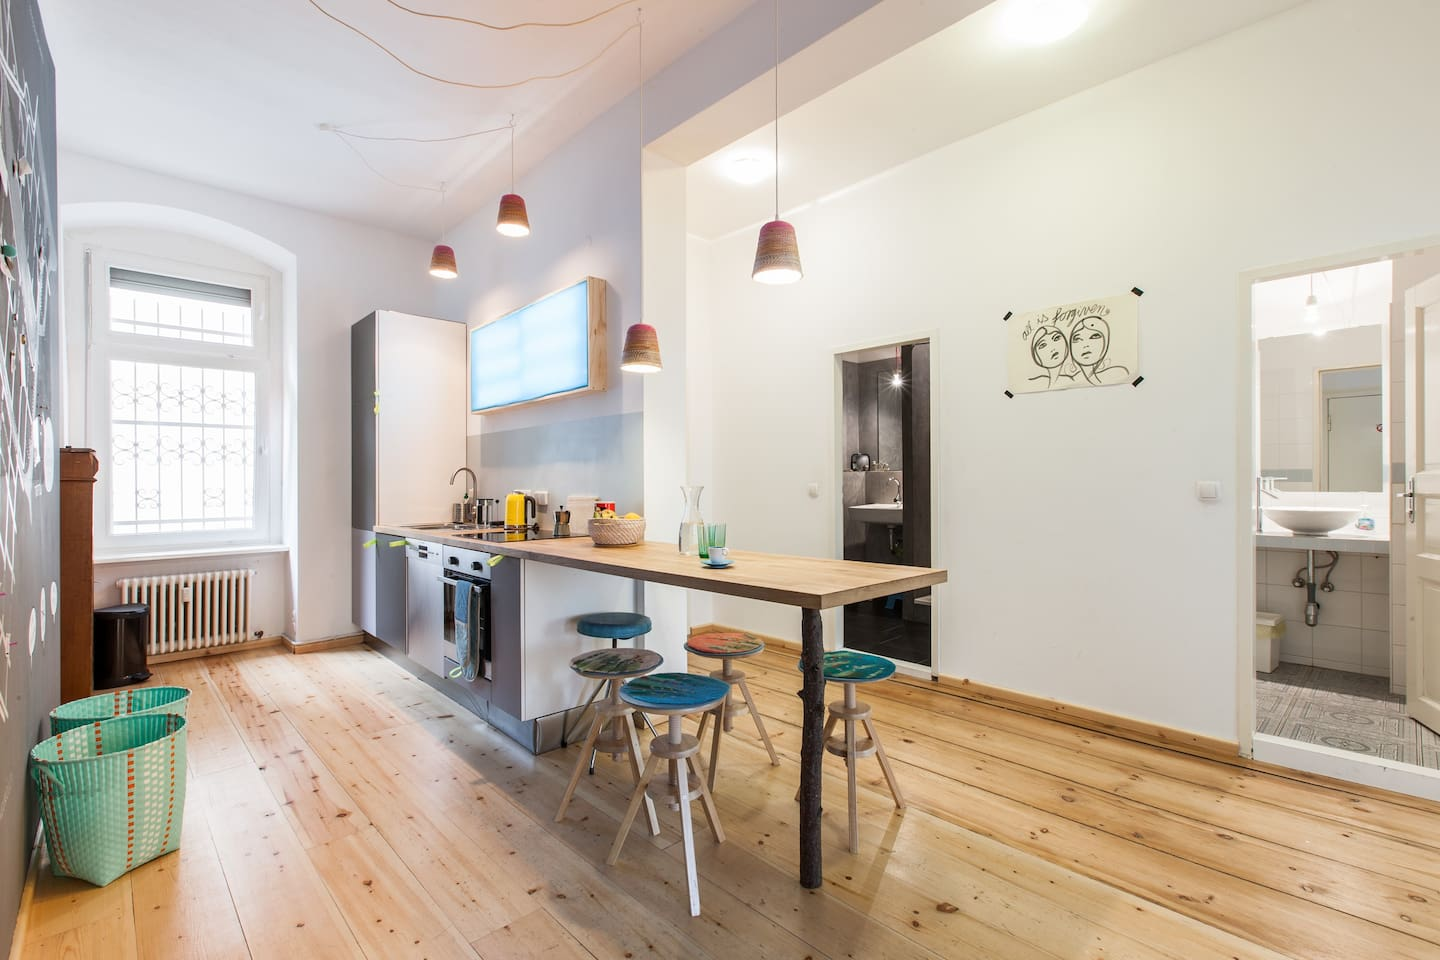 wide and open community kitchen